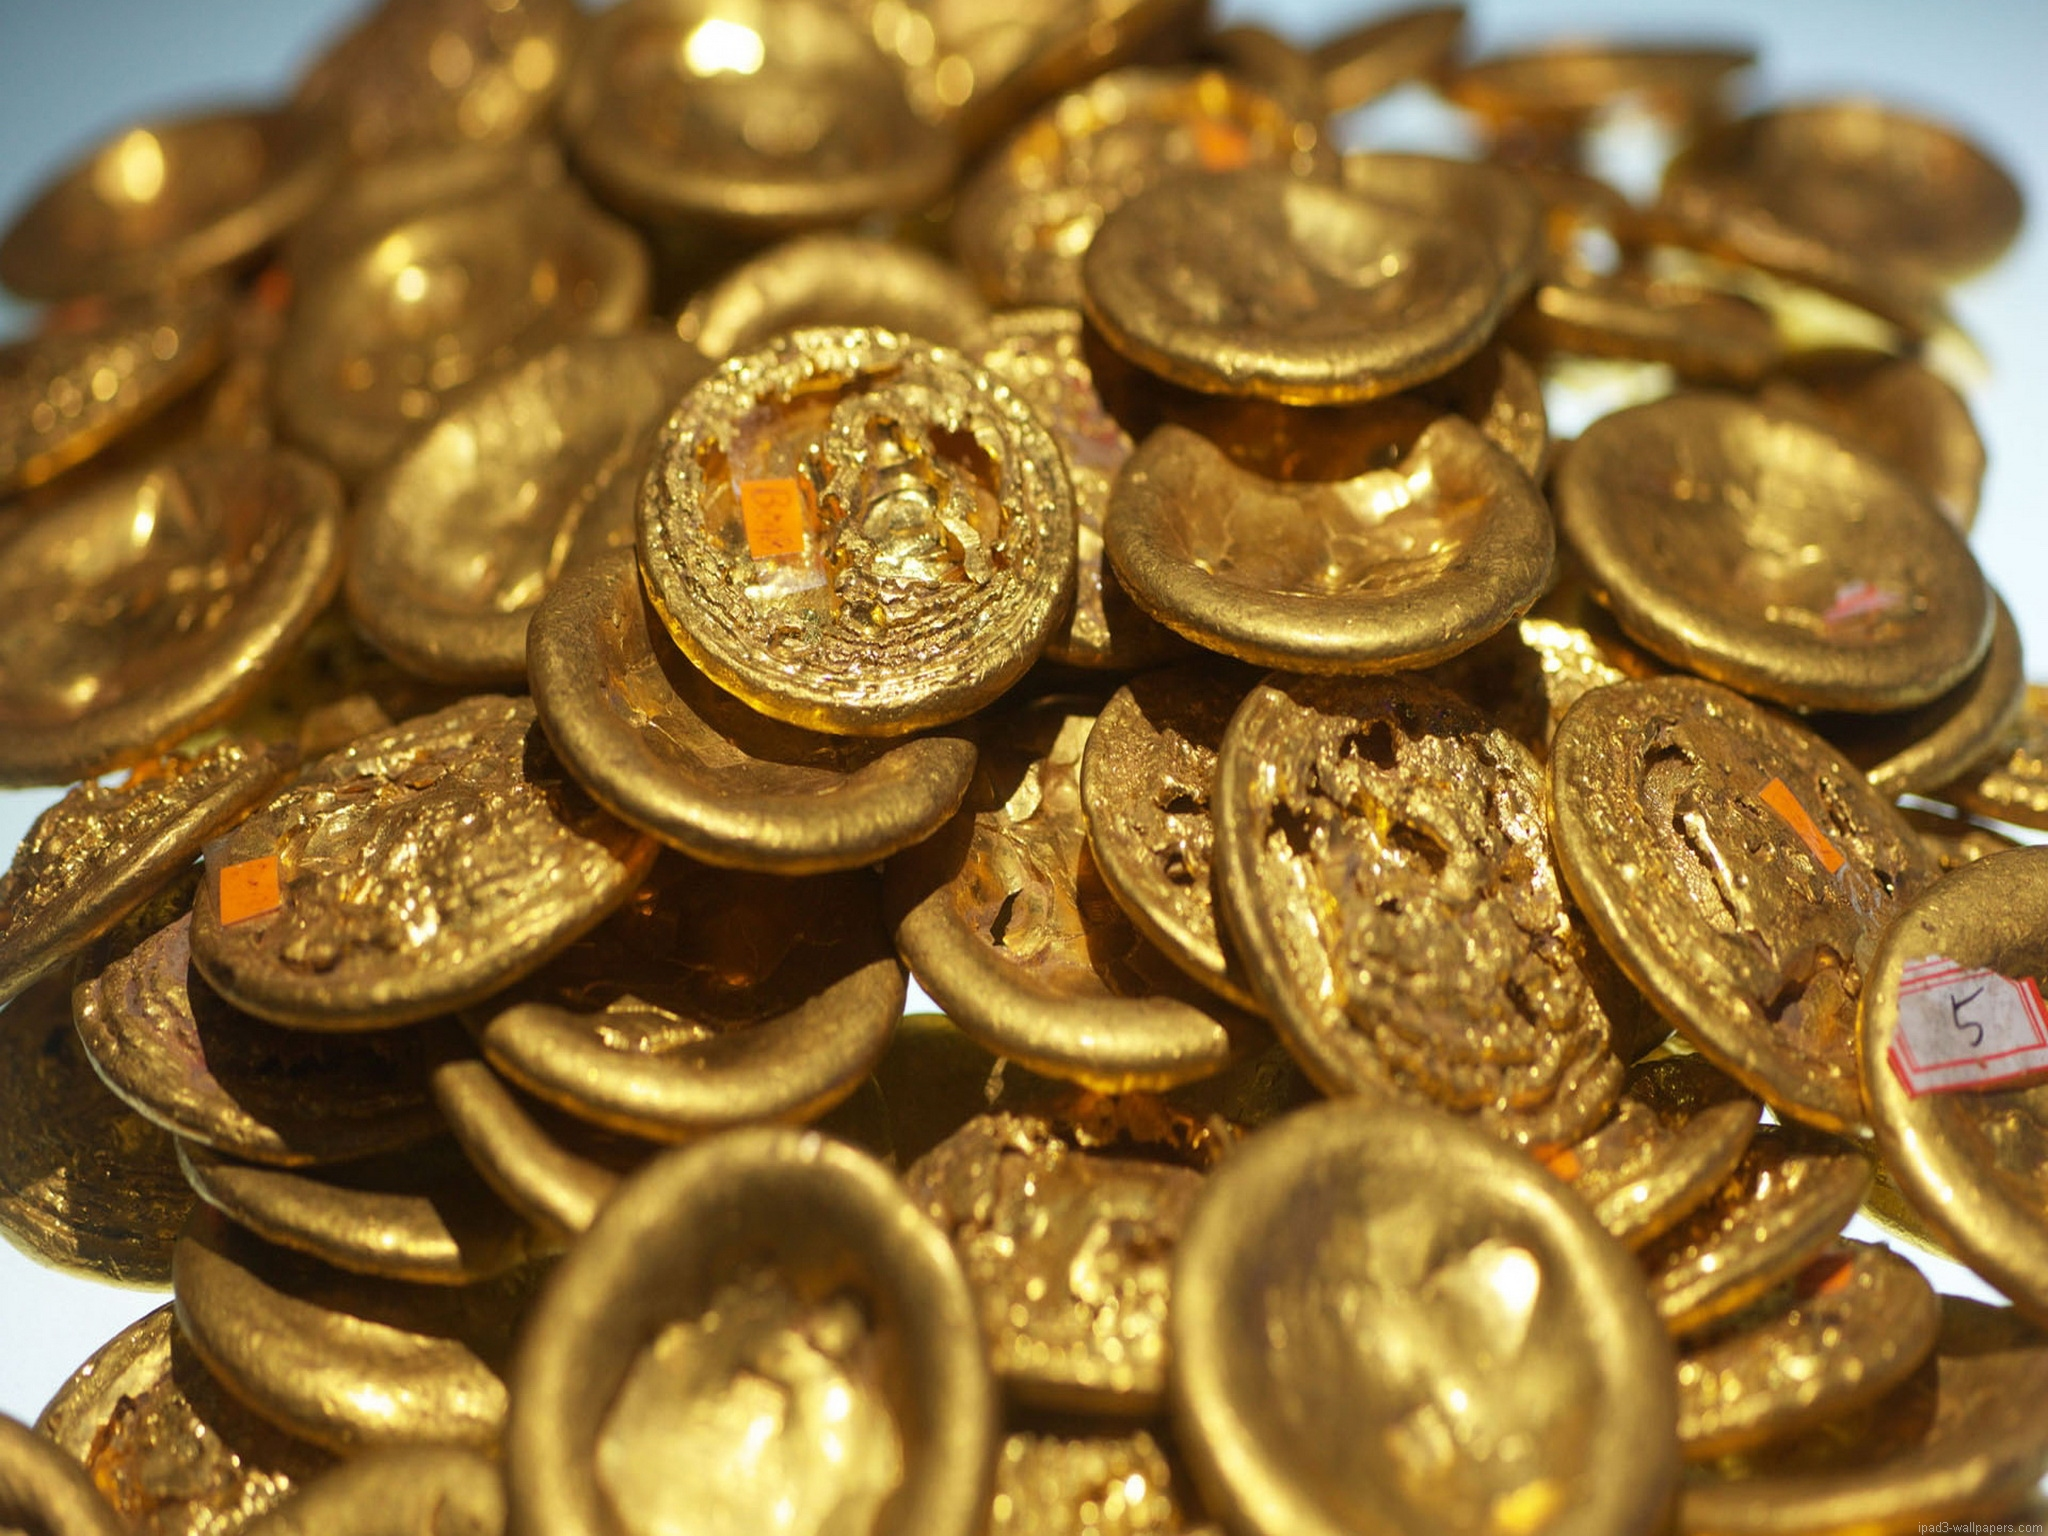 chinese gold coins wallpaper 3894 iPad 3 Wallpaper iPad 3 Background 2048x1536